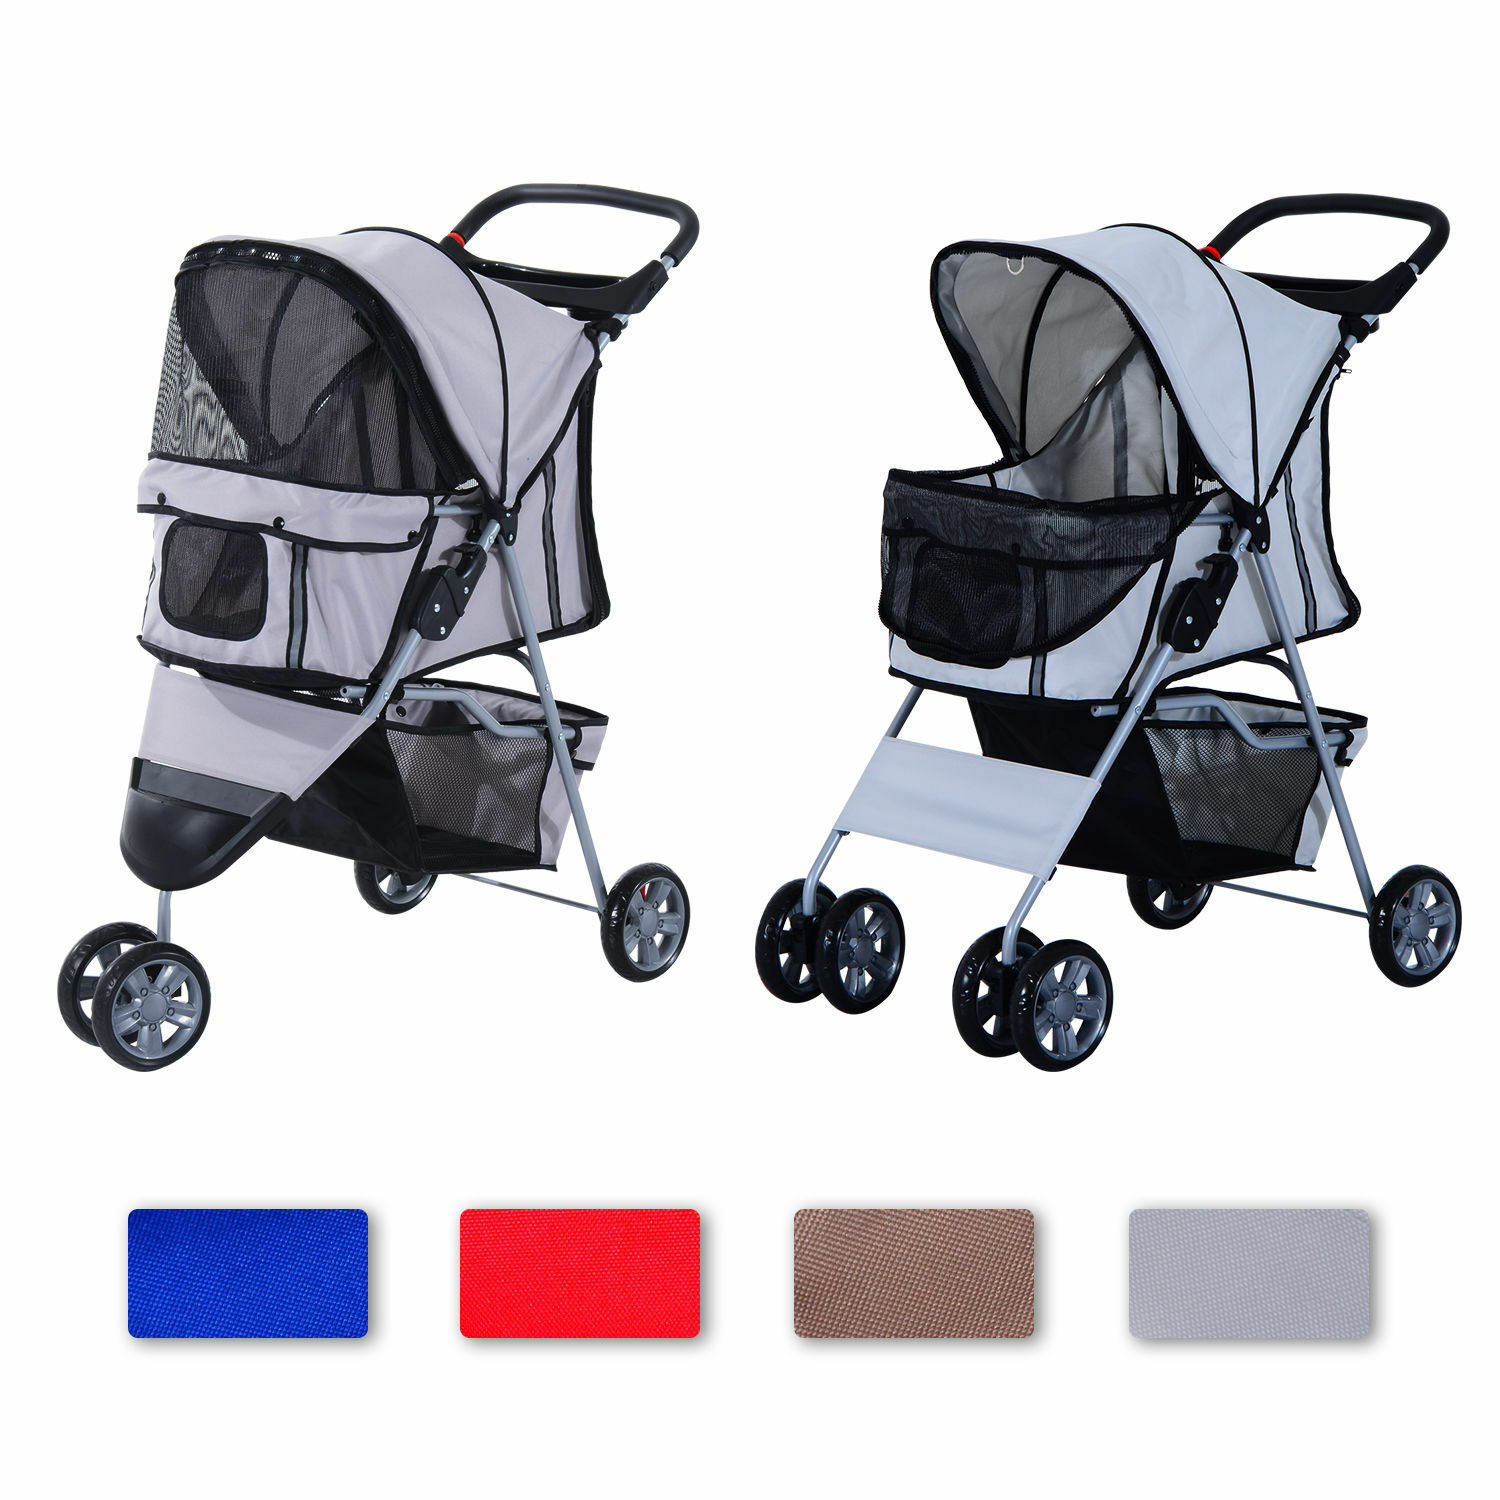 hundewagen hundebuggy hunde pet stroller buggy 4 farben 3. Black Bedroom Furniture Sets. Home Design Ideas